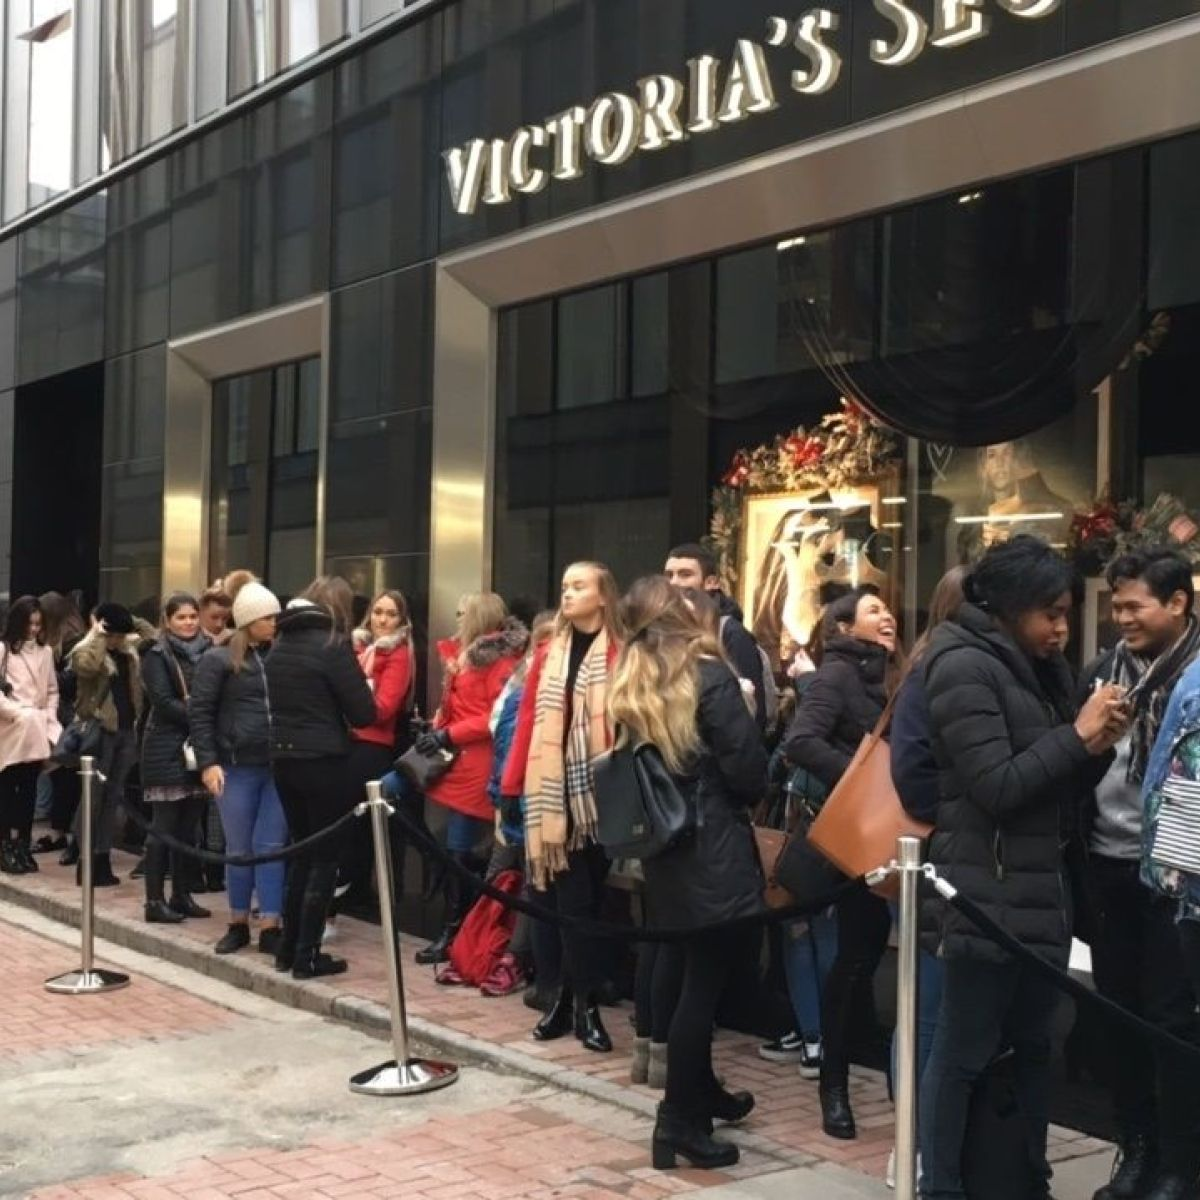 How To Make A Book Cover Out Of A Victoria S Secret Bag ~ Protest at victorias secret as 500 queue for dublin opening